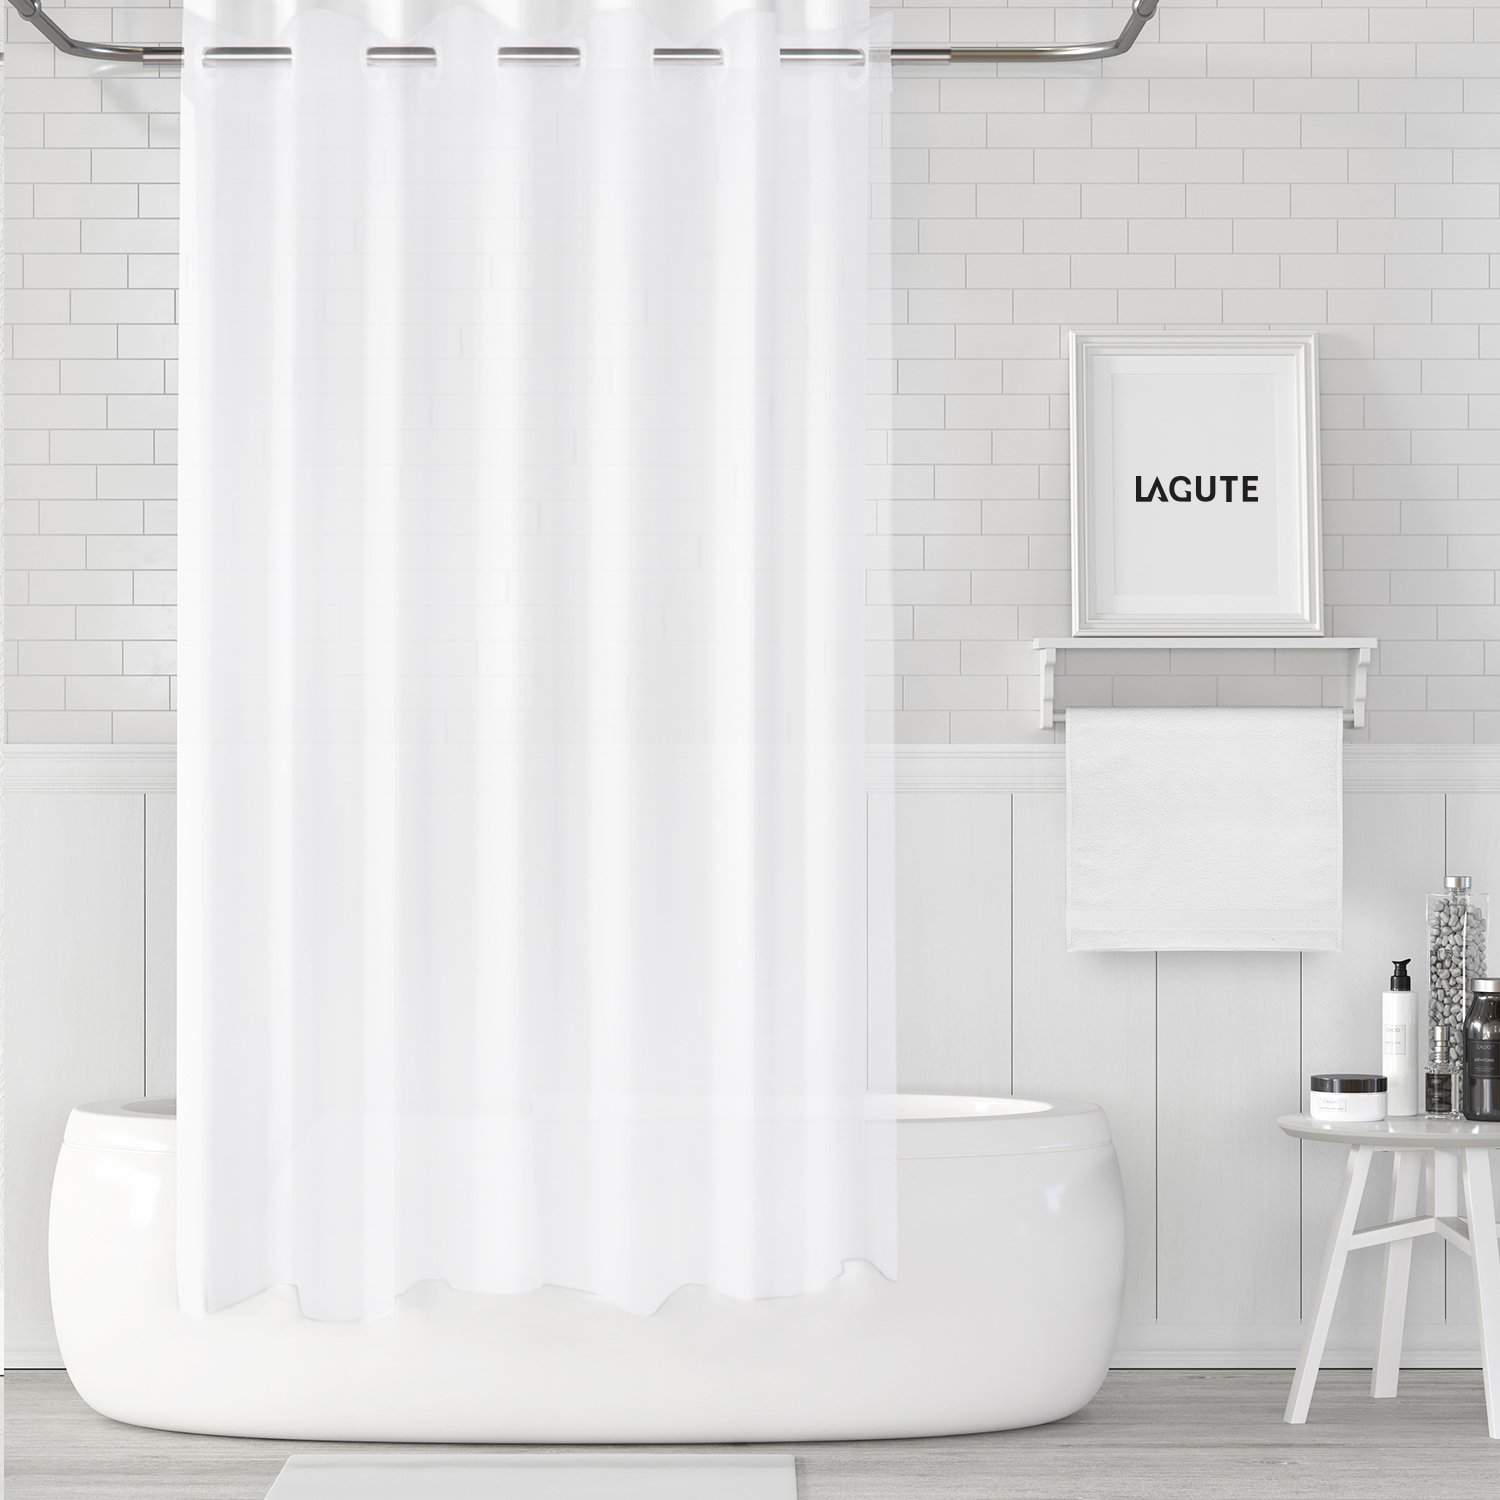 Lagute Snaphook Shower Curtain, 71 x 74 inch Translucent PEVA Bathroom Curtain with Waterproof Anti-moldy, Frosted White Color HS-201